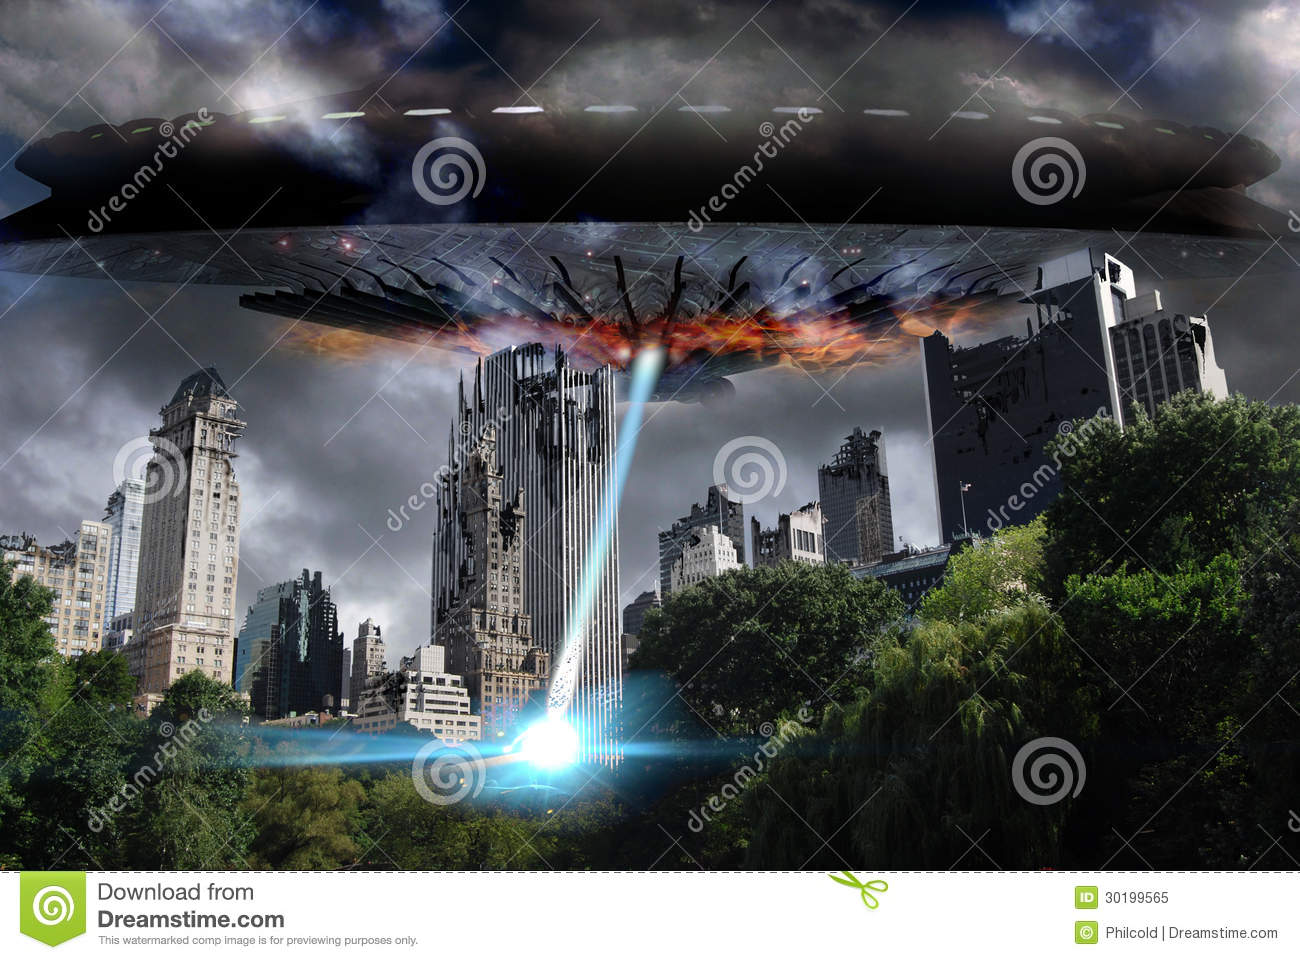 alien attack royalty free stock photo